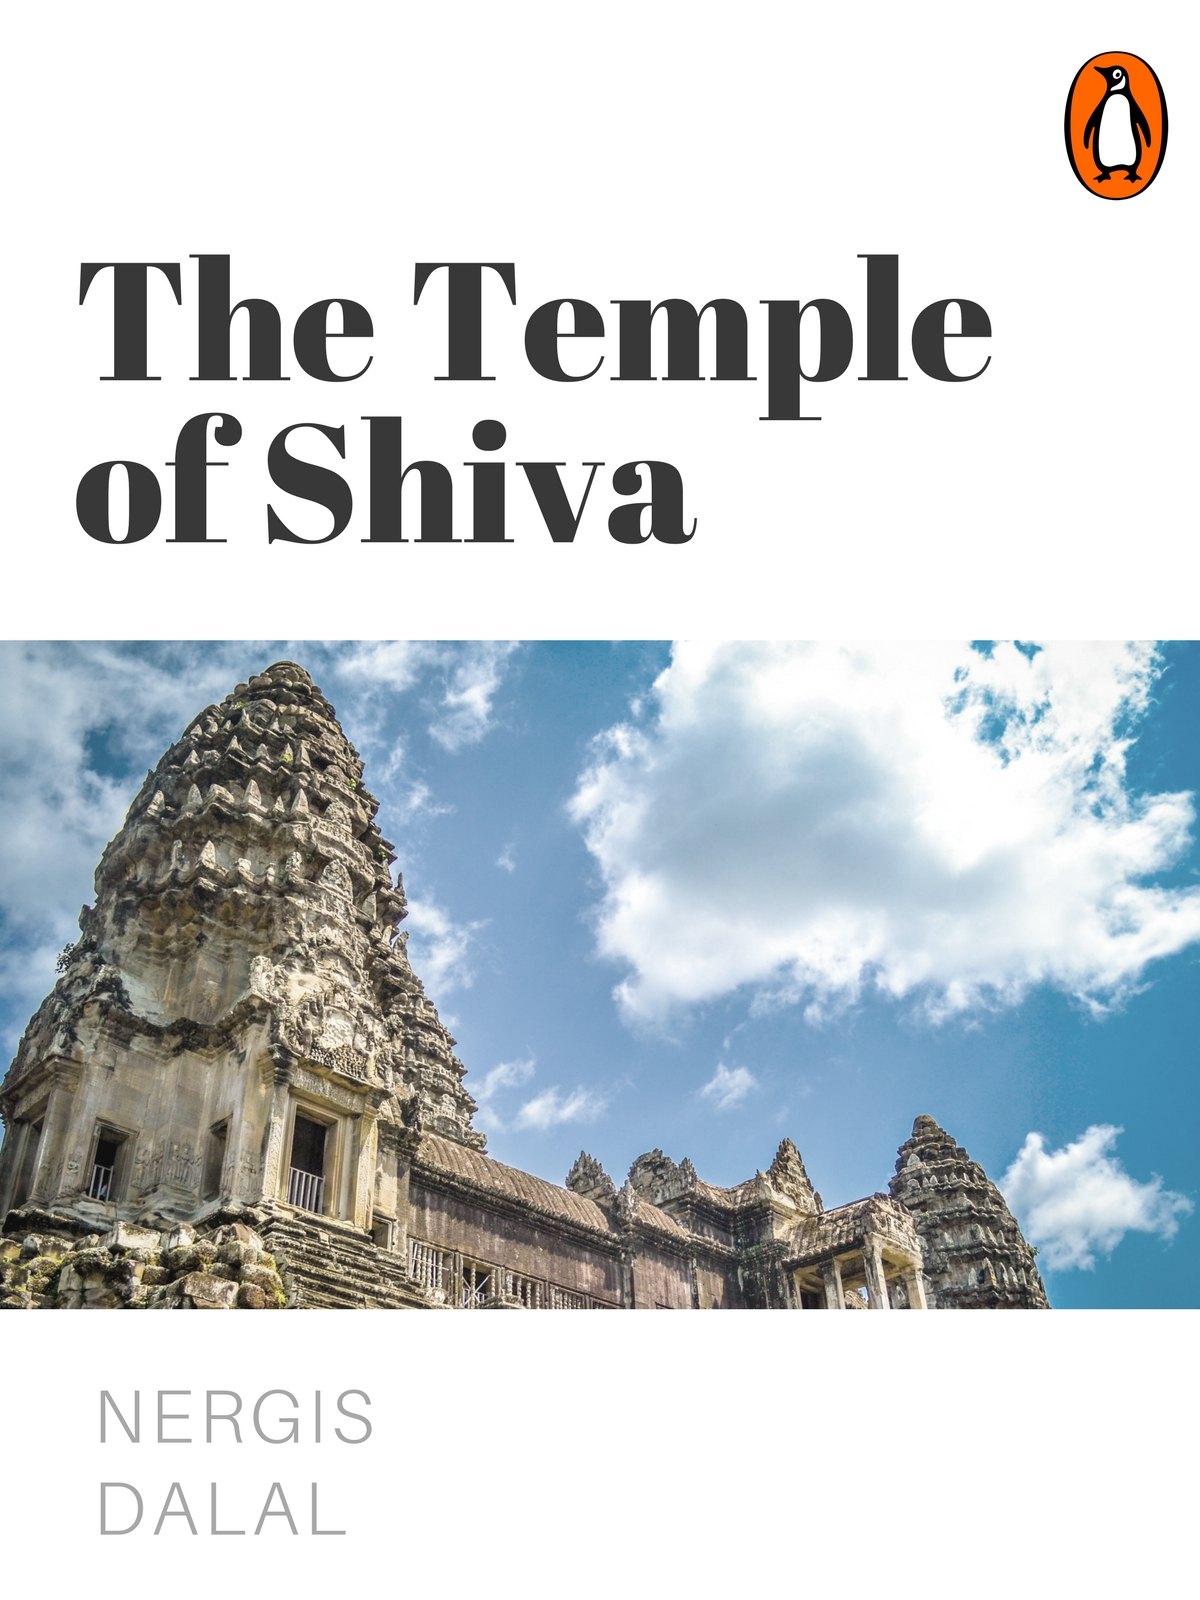 The Temple of Shiva